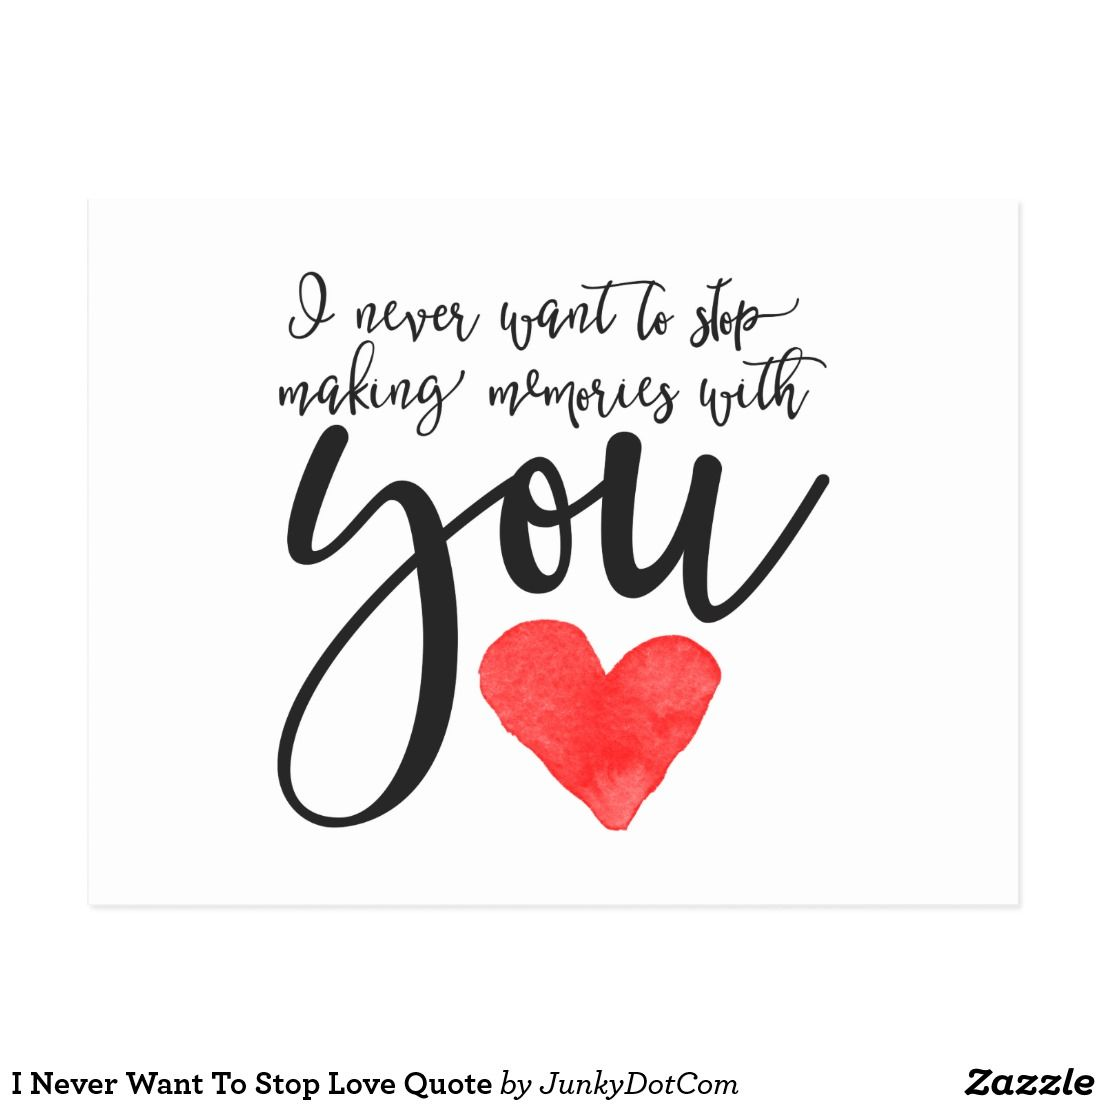 I Never Want To Stop Love Quote Postcard May 29 2017 #zazzle #junkydotcom